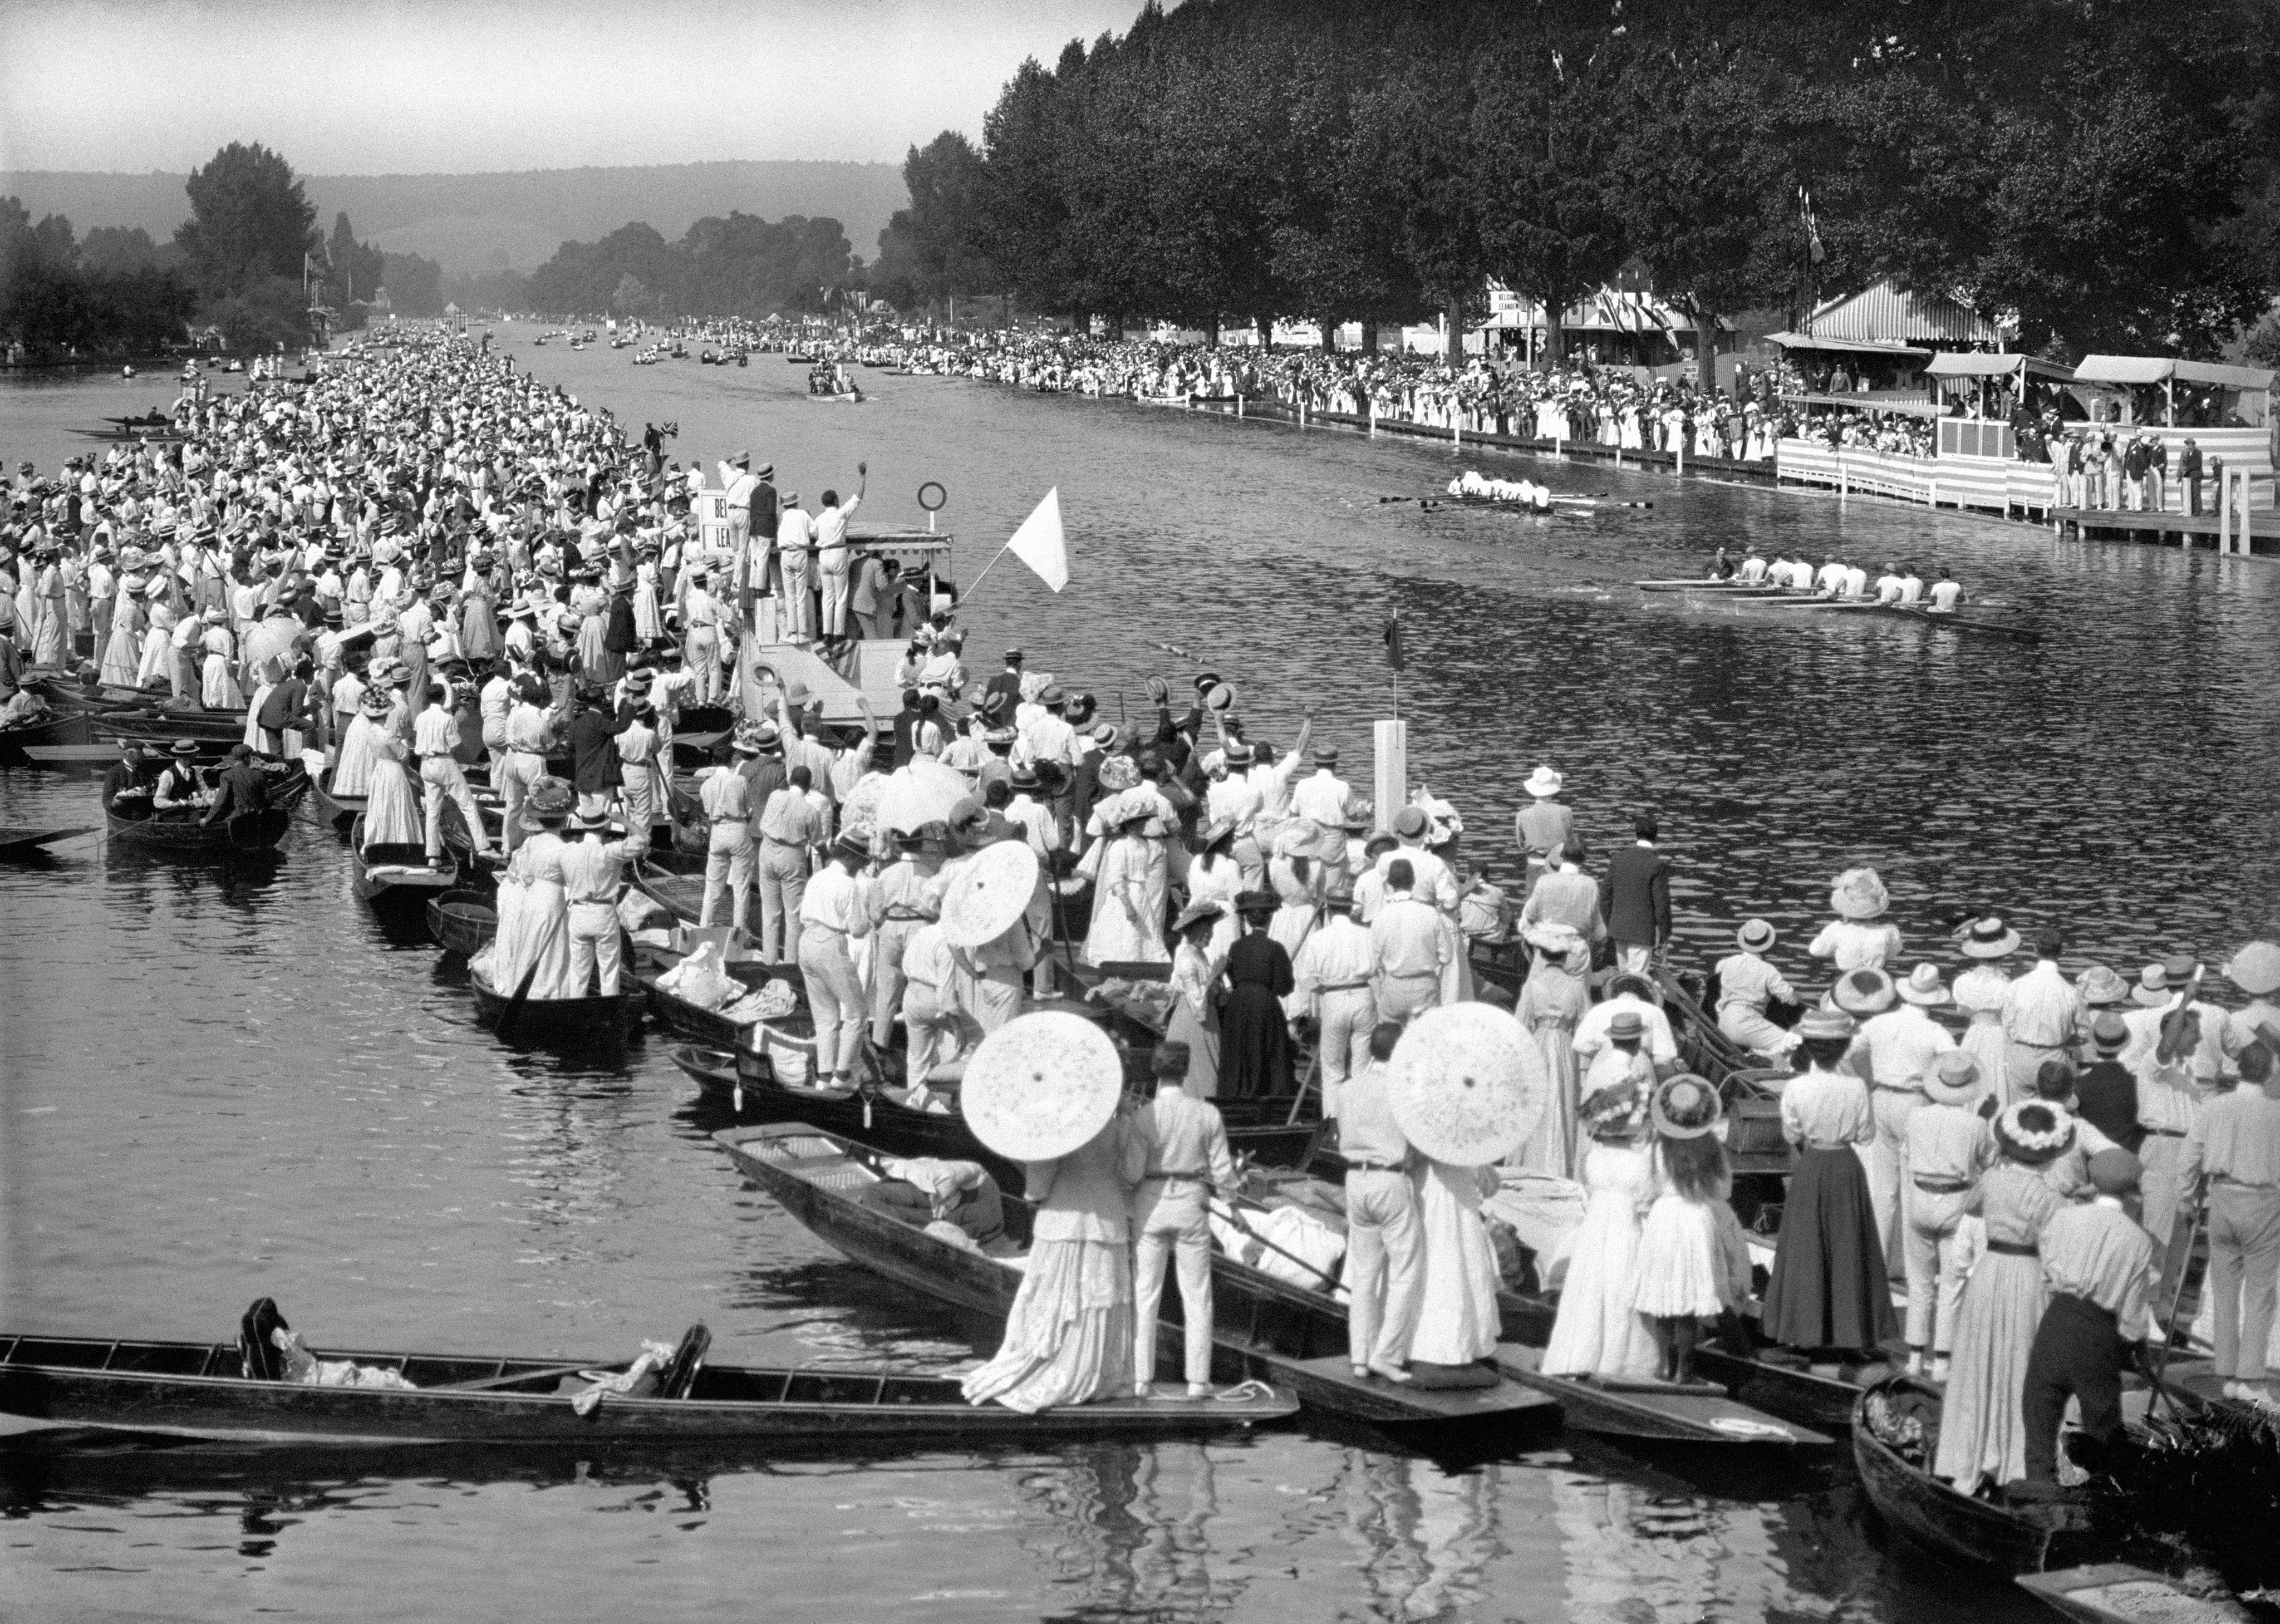 London, 1908: The eruption of Mount Vesuvius in 1906 meant the games were relocated from Rome to London on financial grounds. This image shows spectators gathering as Great Britain, represented by the Leander club, beats Belgium to win gold in the rowing.